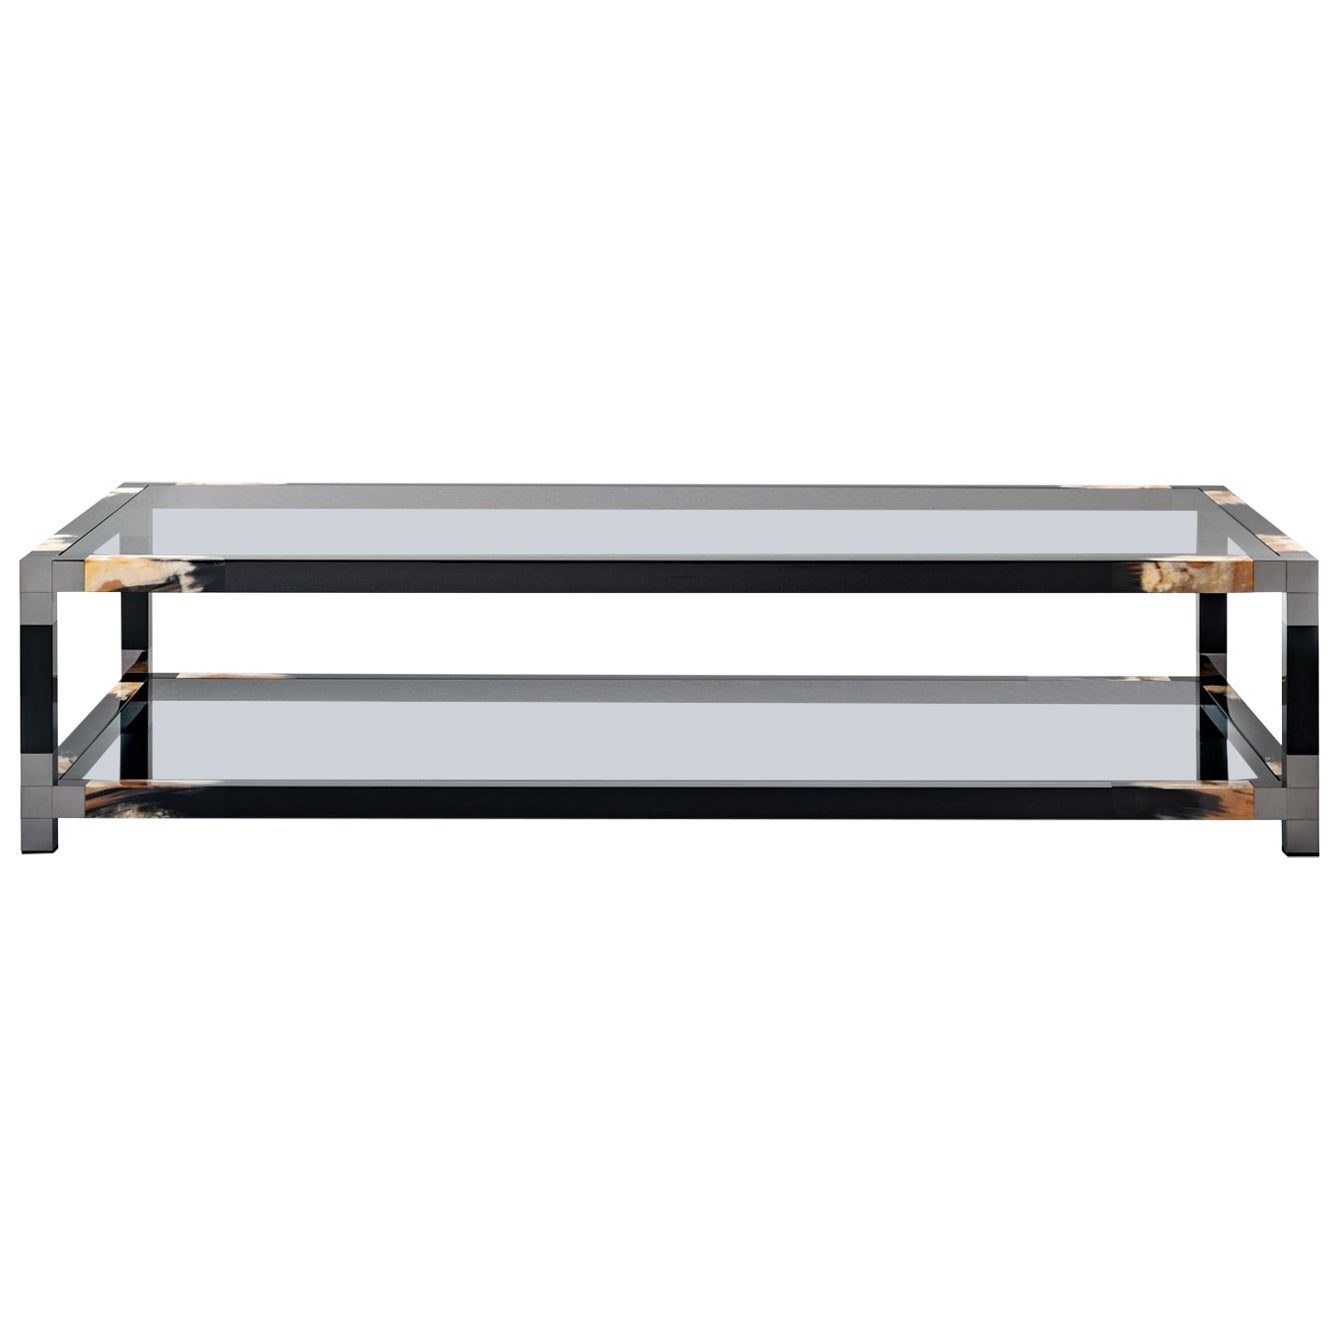 Alcamo Coffee Table in Lacquered Wood with Corno Italiano Inlays, Mod. 2304